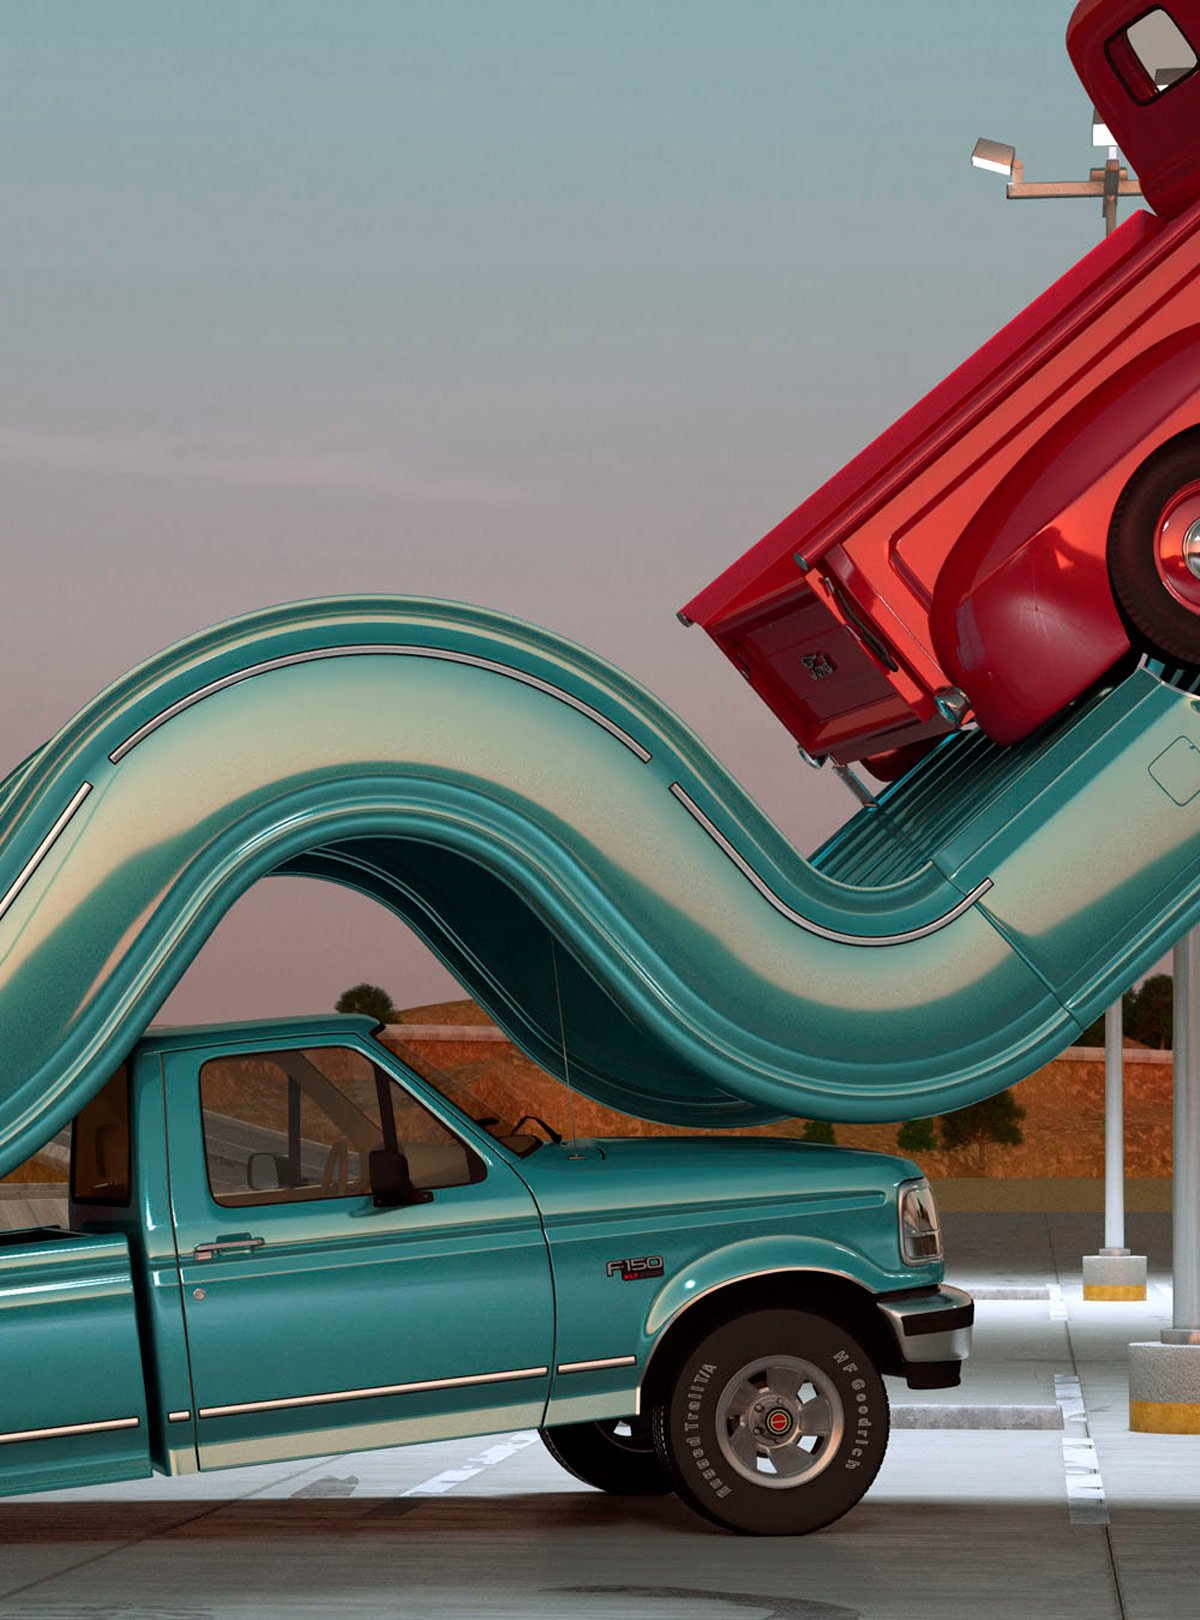 tales-of-auto-elasticity-rendered-photographs-by-chris-labrooy-3